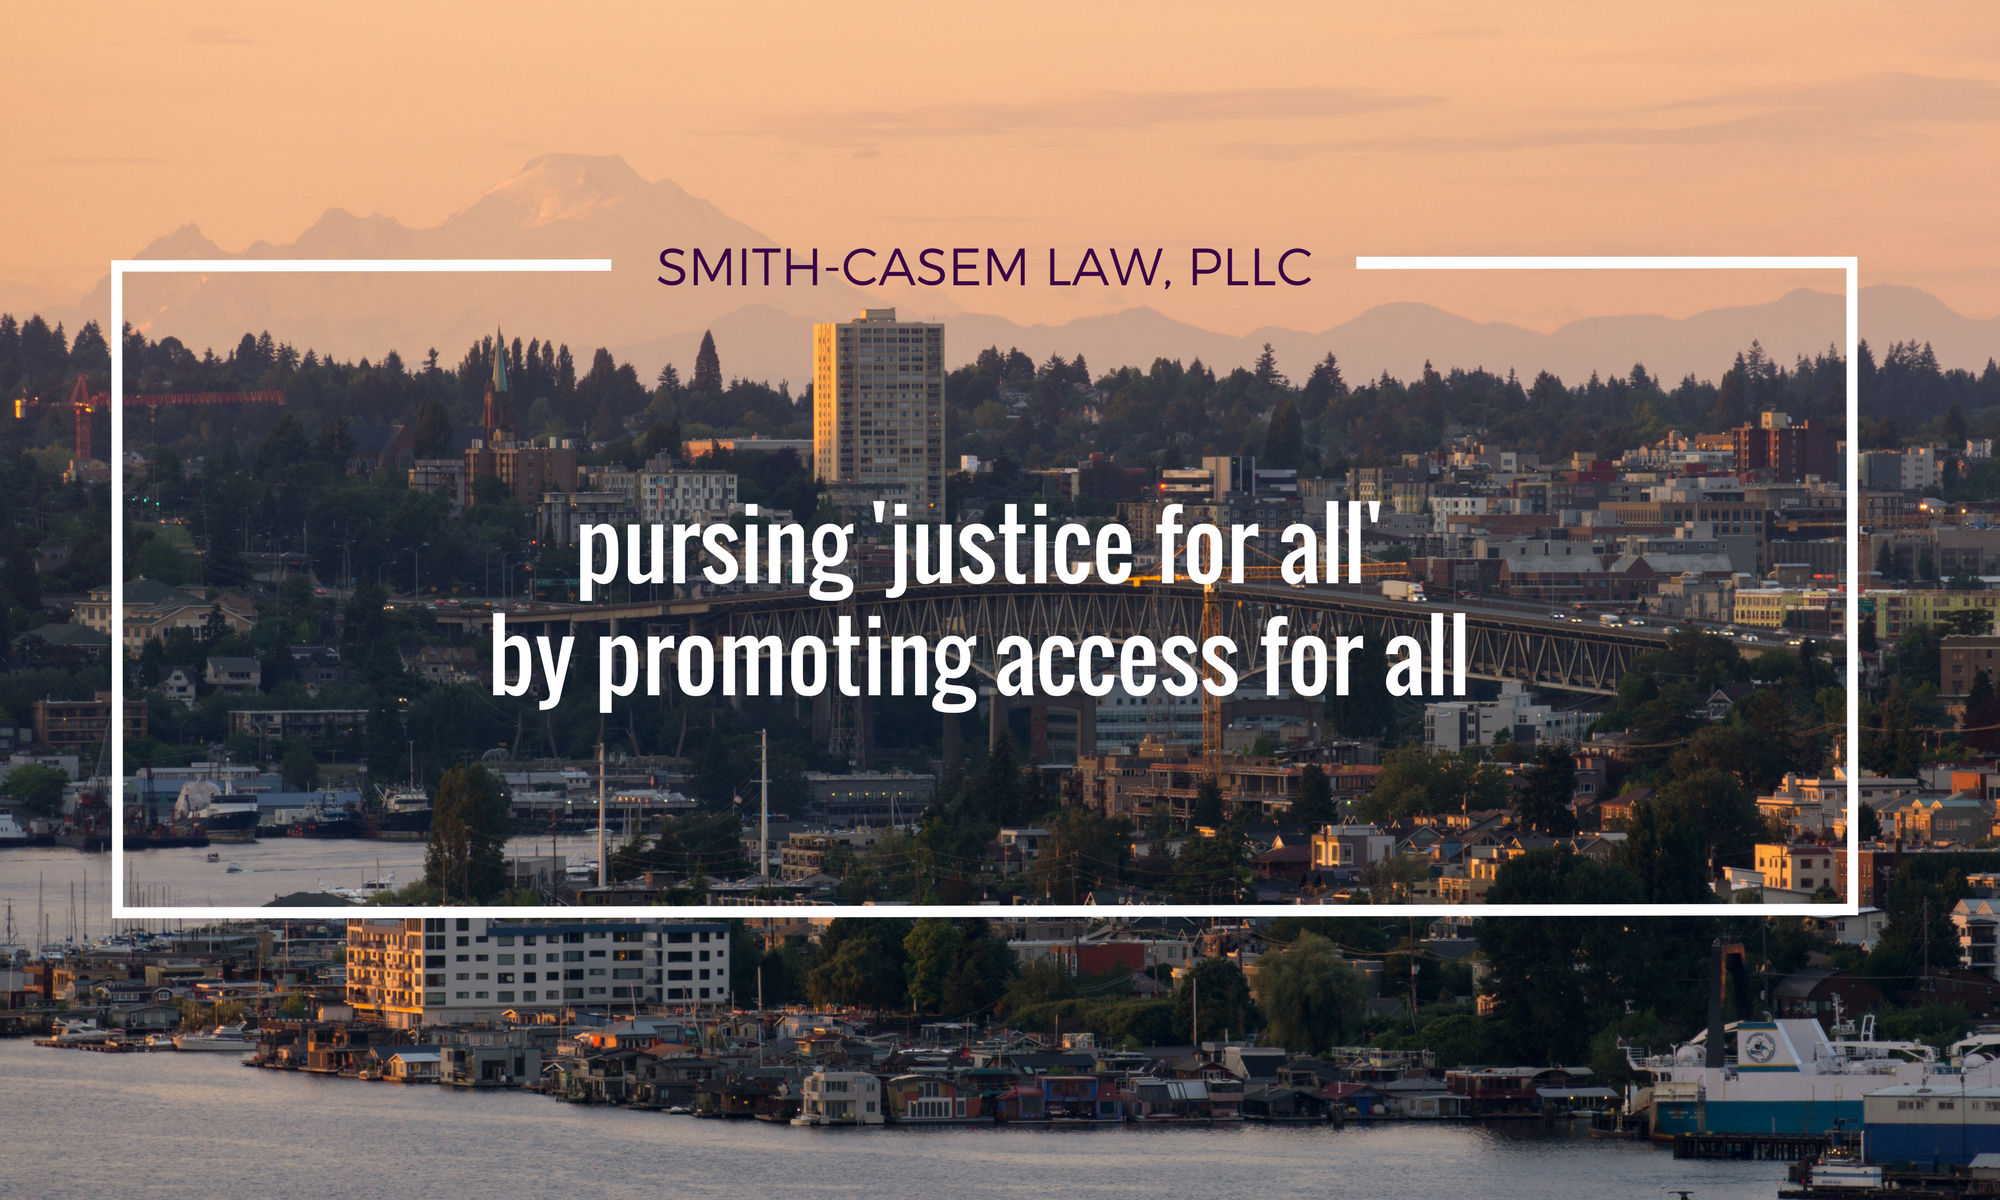 SMITH-CASEM LAW, PLLC